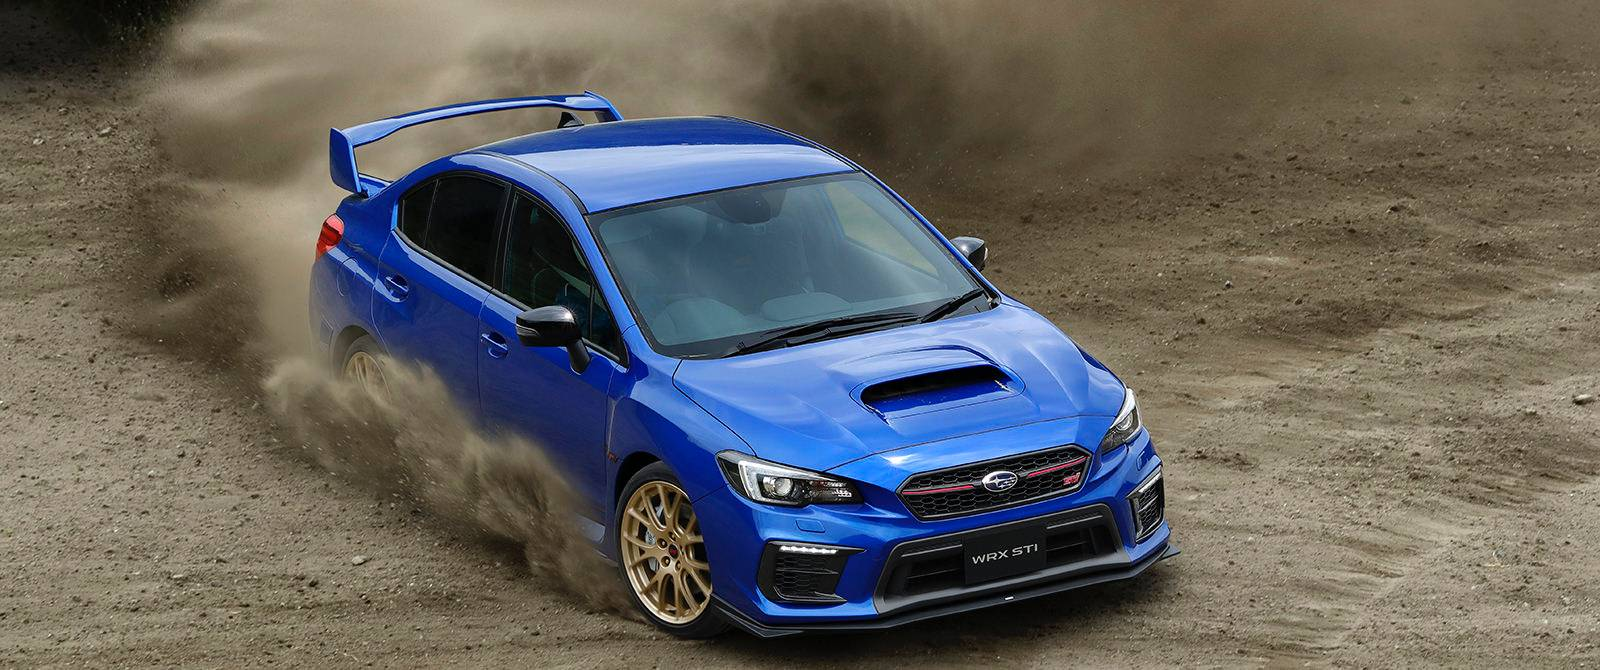 73765225-subaru-wrx-sti-ej20-final-edition-prototype-2